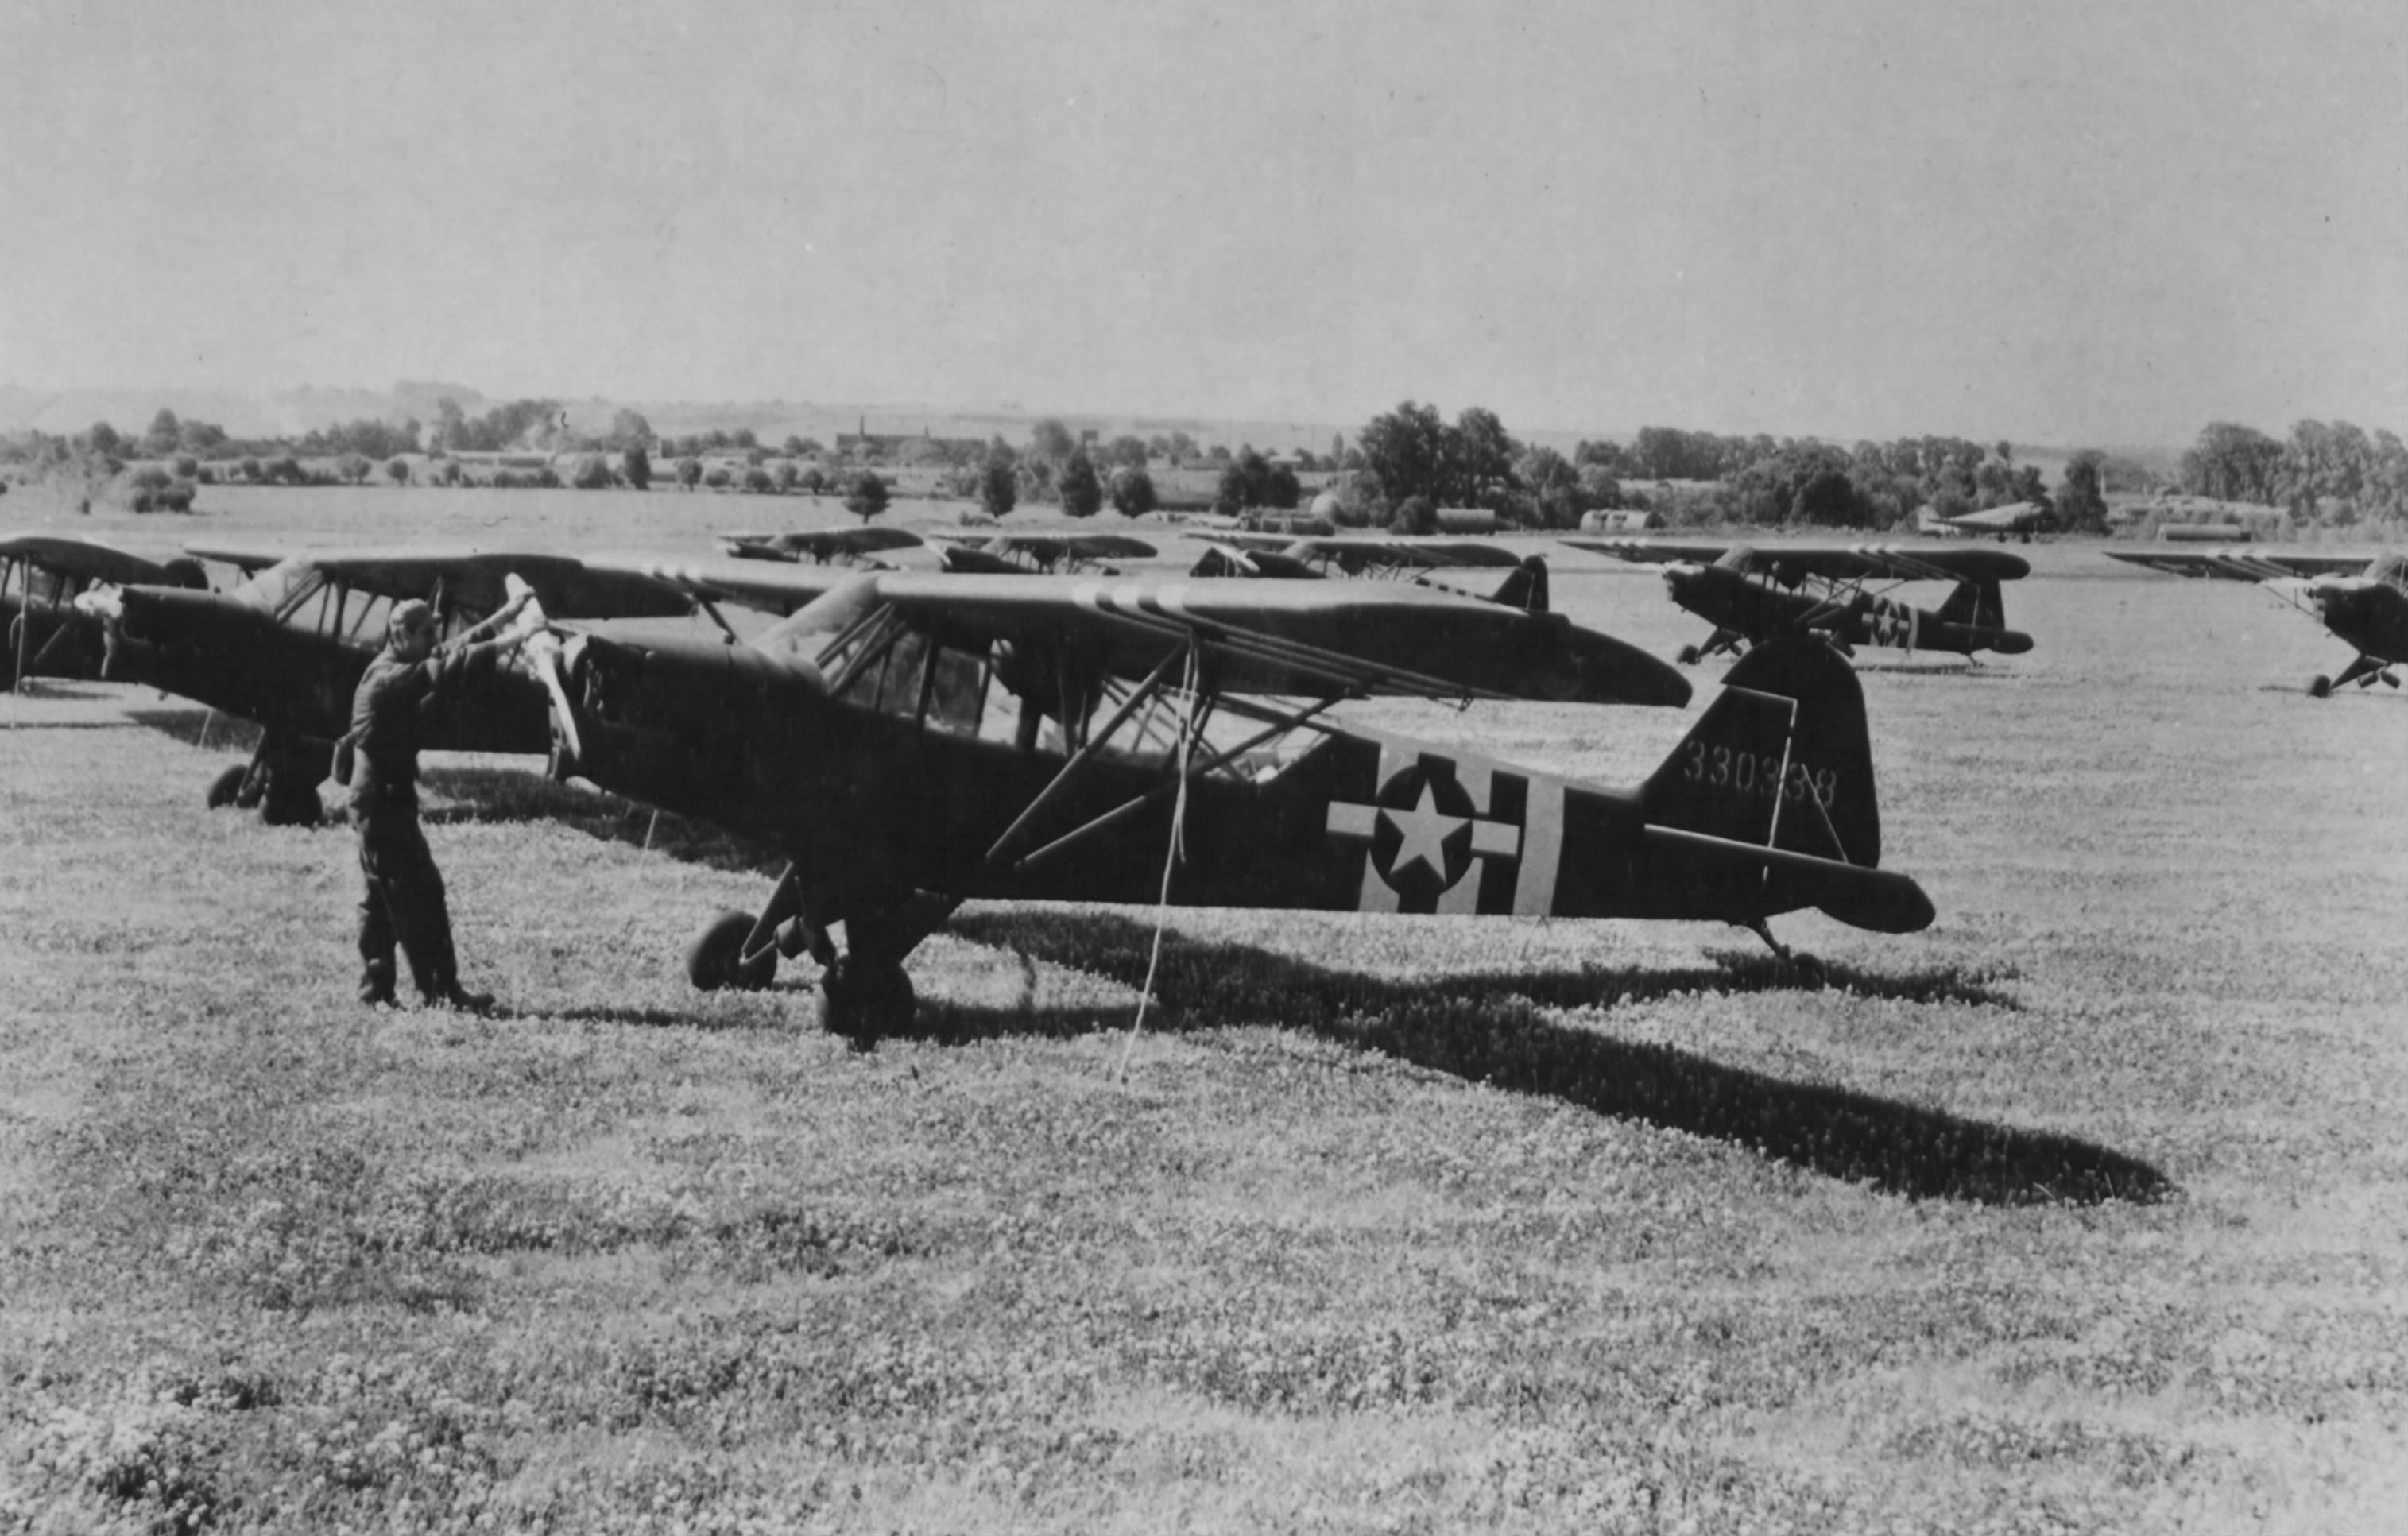 L Birds in 1944, in Normandy - gathering Piper L-4 and L-5 Stinson